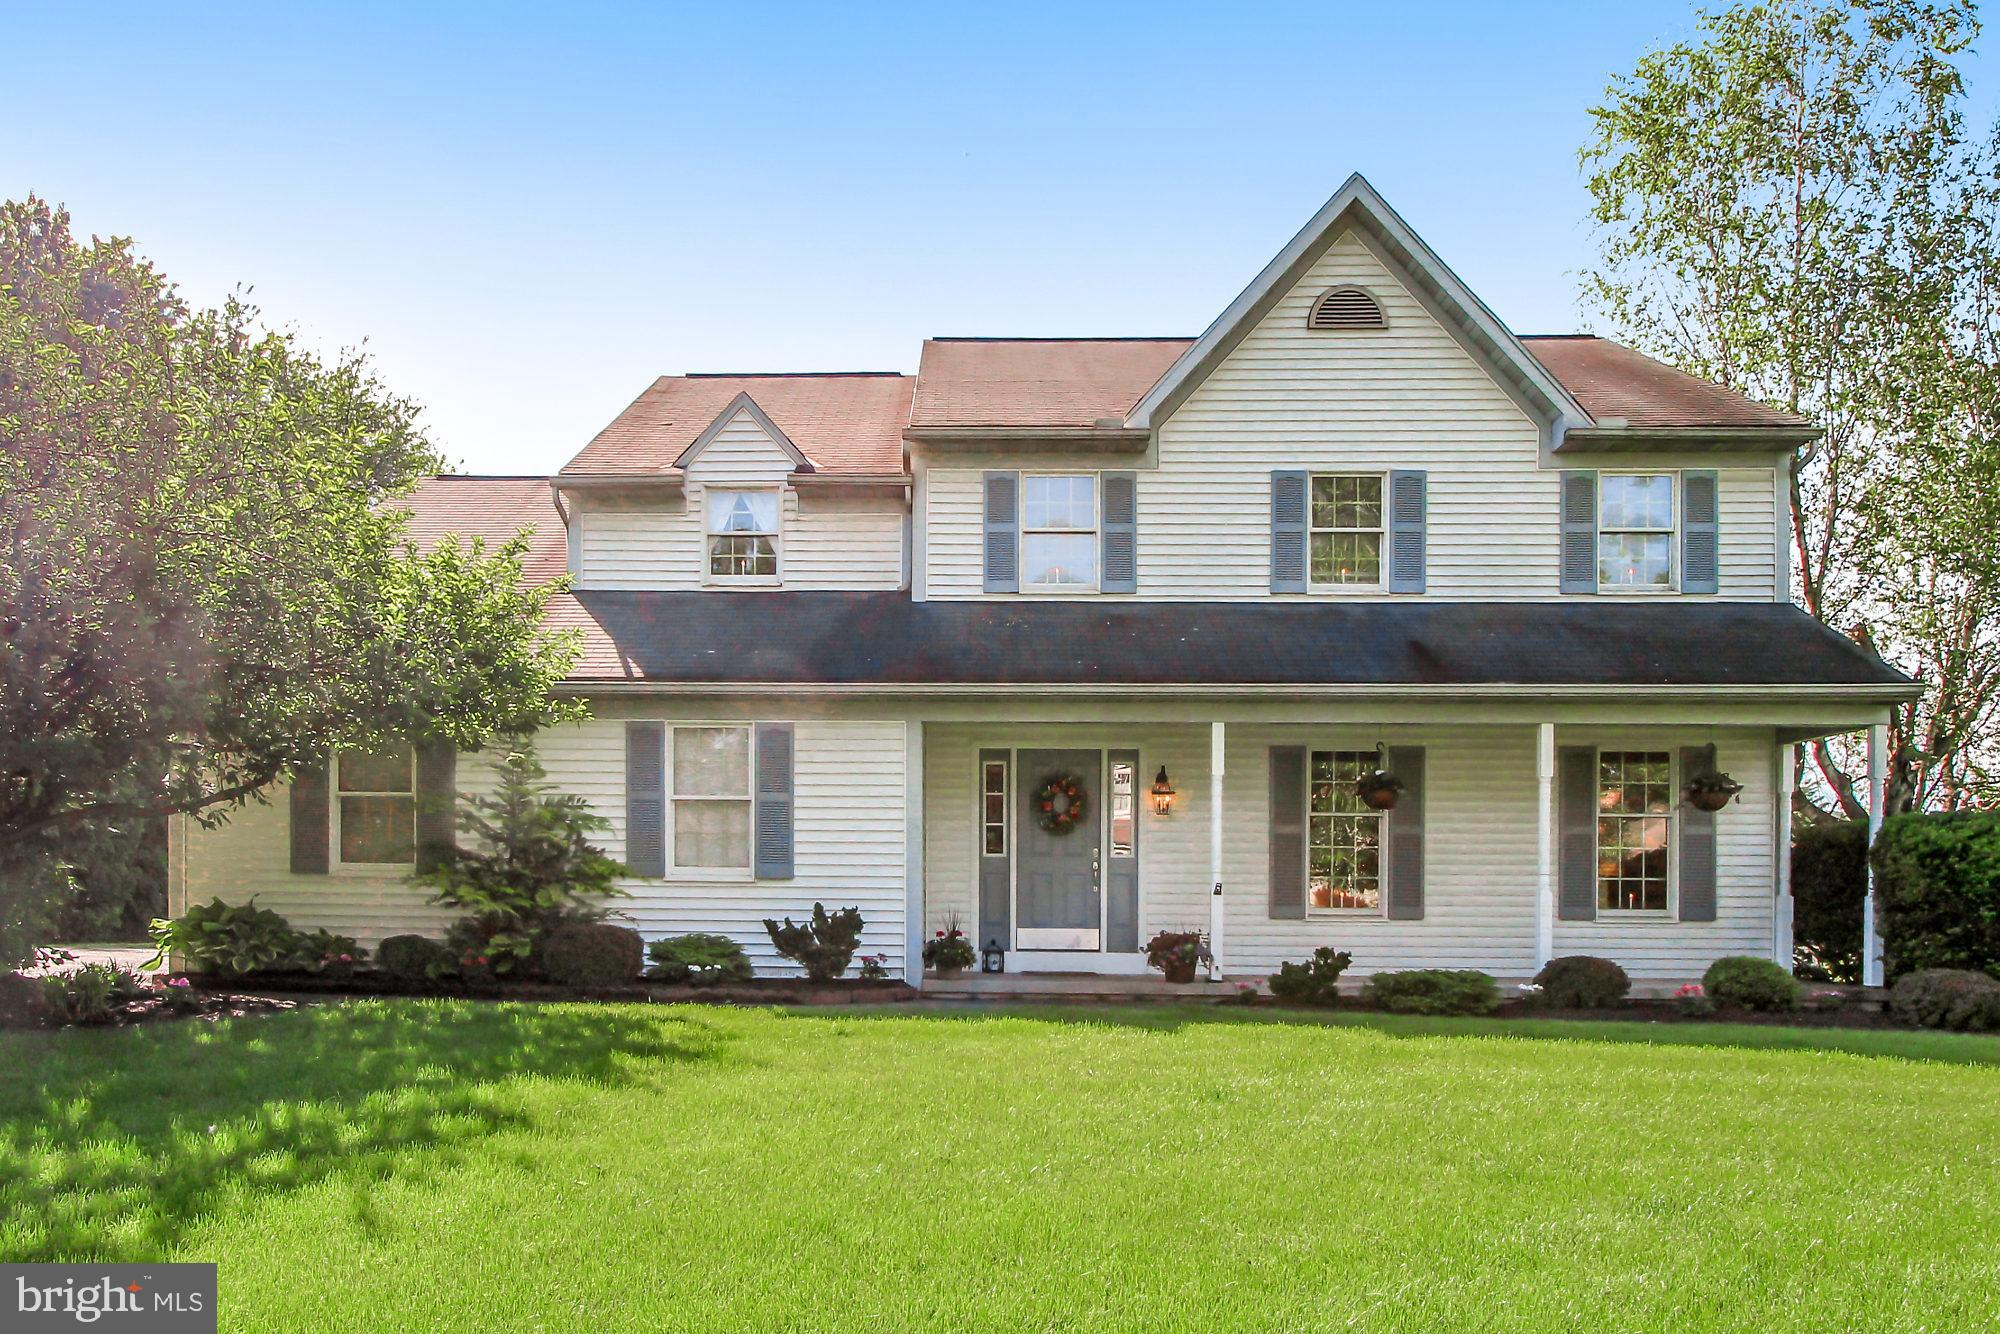 349 W WALNUT TREE DRIVE, BLANDON, PA 19510